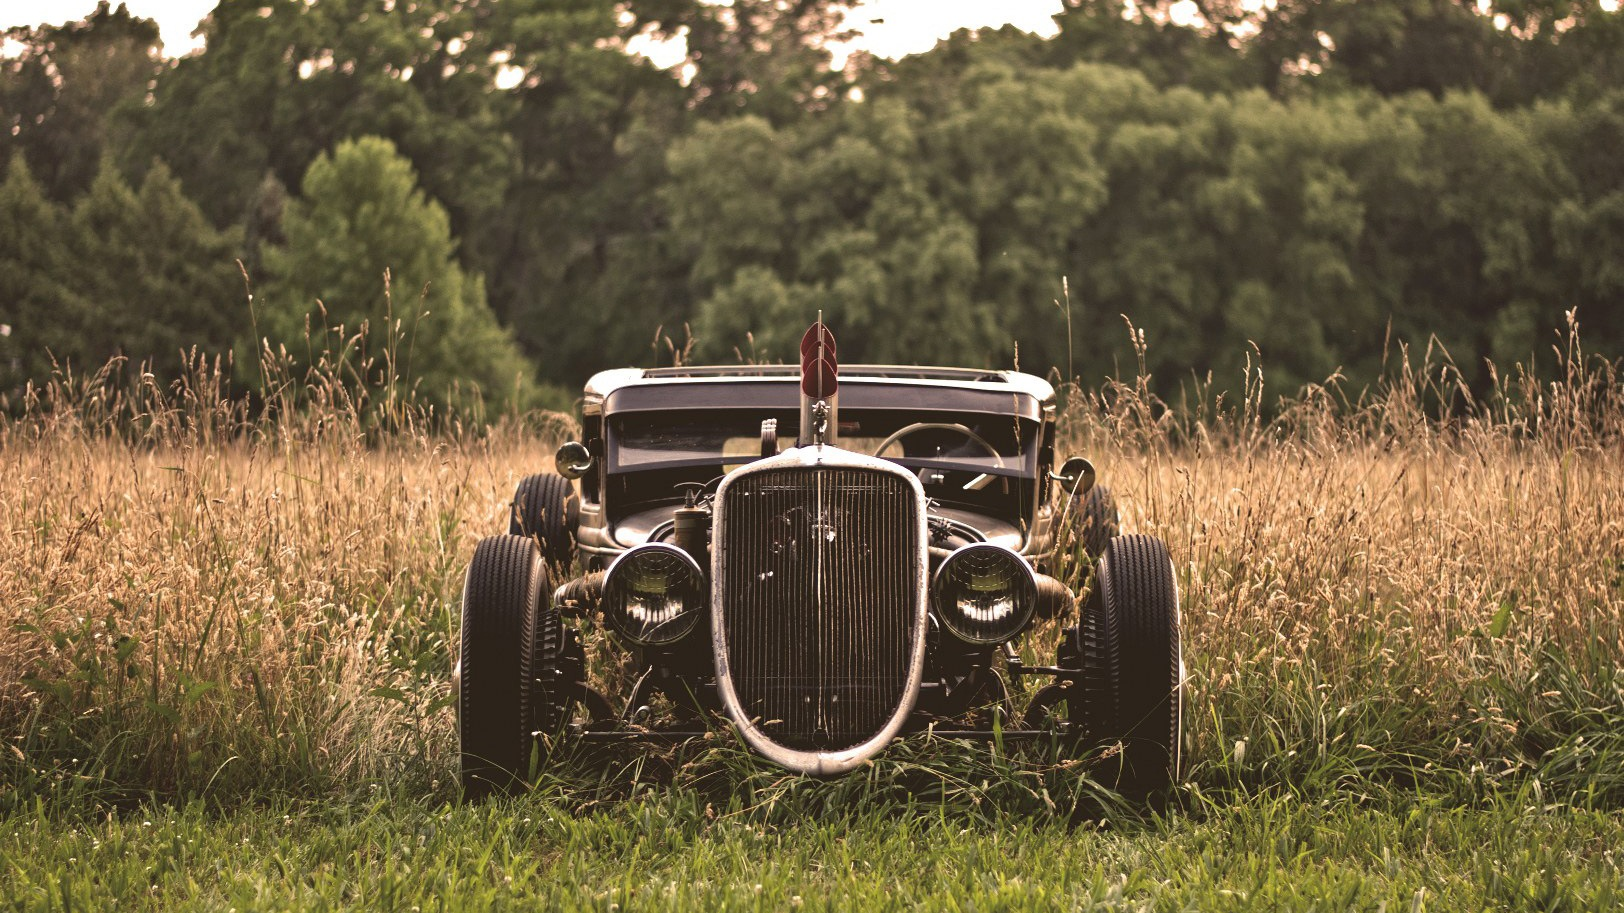 Rat Rod Computer Wallpapers Desktop Backgrounds 1624x913 ID 1624x913